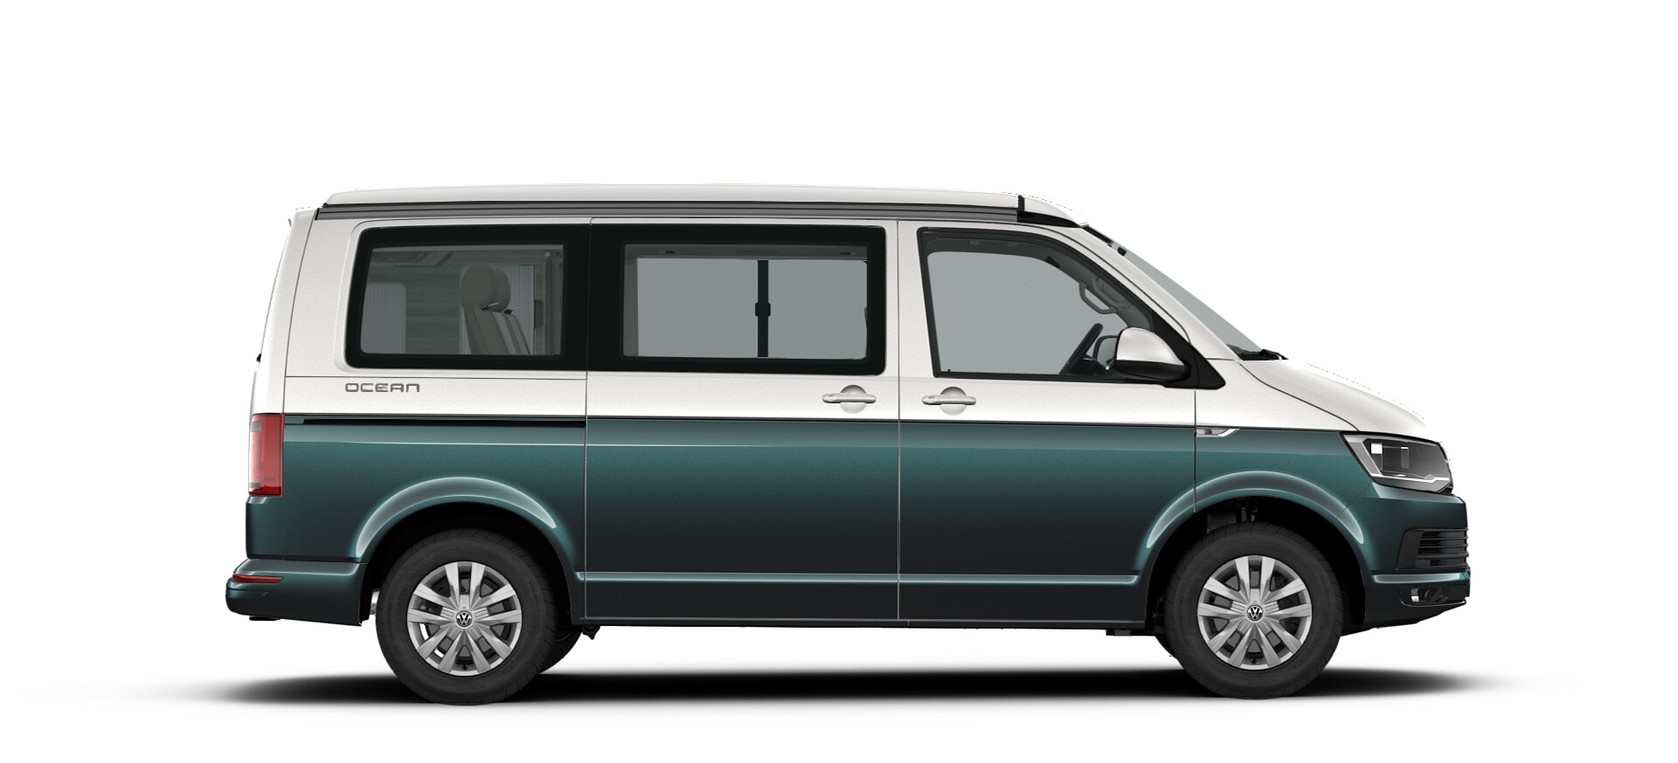 Bambus Green/Candy White two tone metallic lak - Volkswagen California Ocean